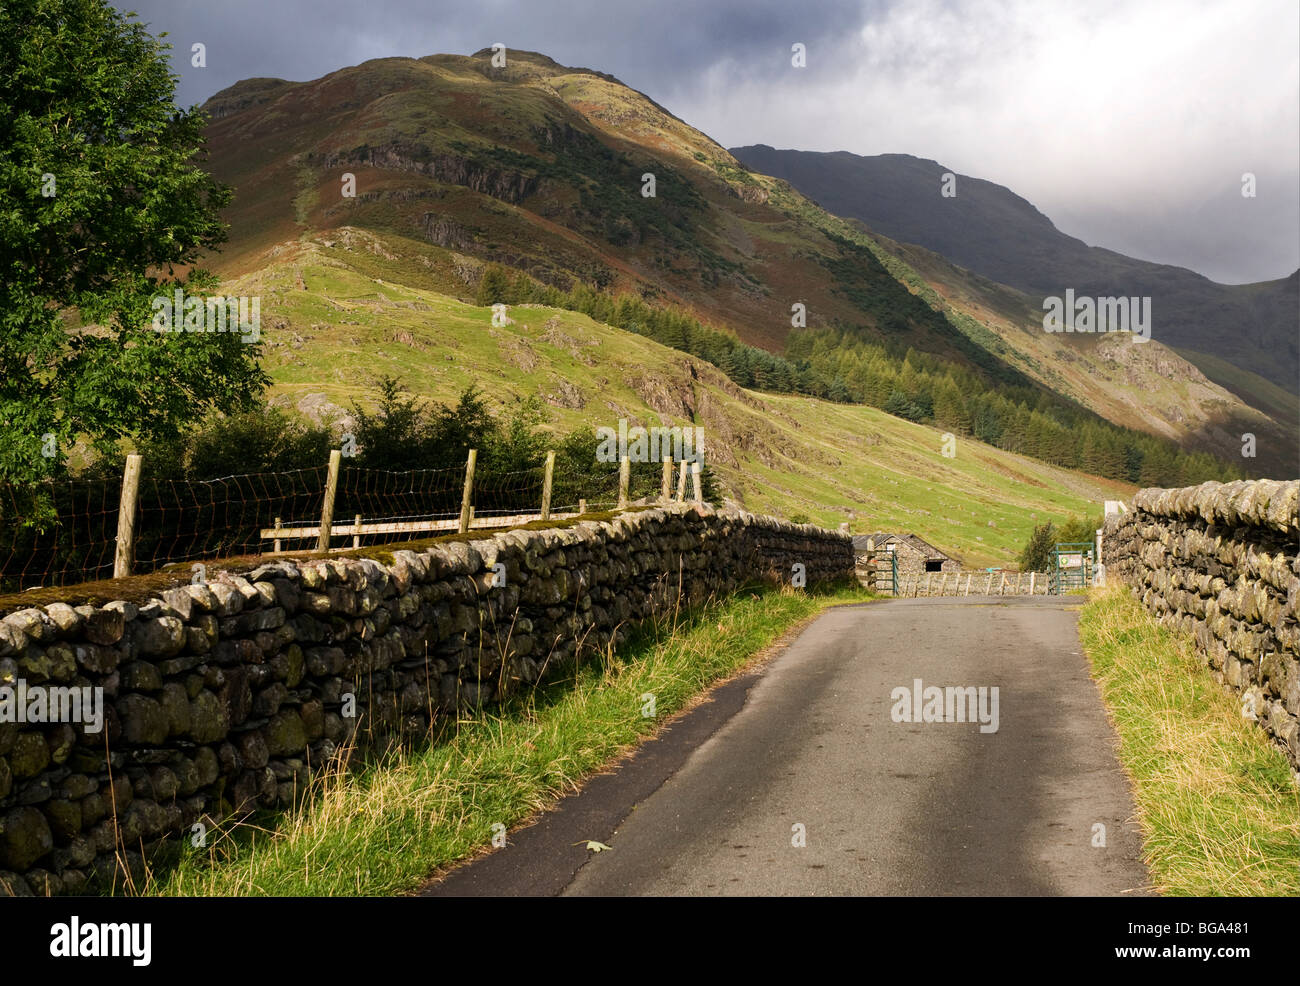 Walk towards ridge known as 'The Band' towards Bowfell, Lake District, Cumbria, UK - Stock Image